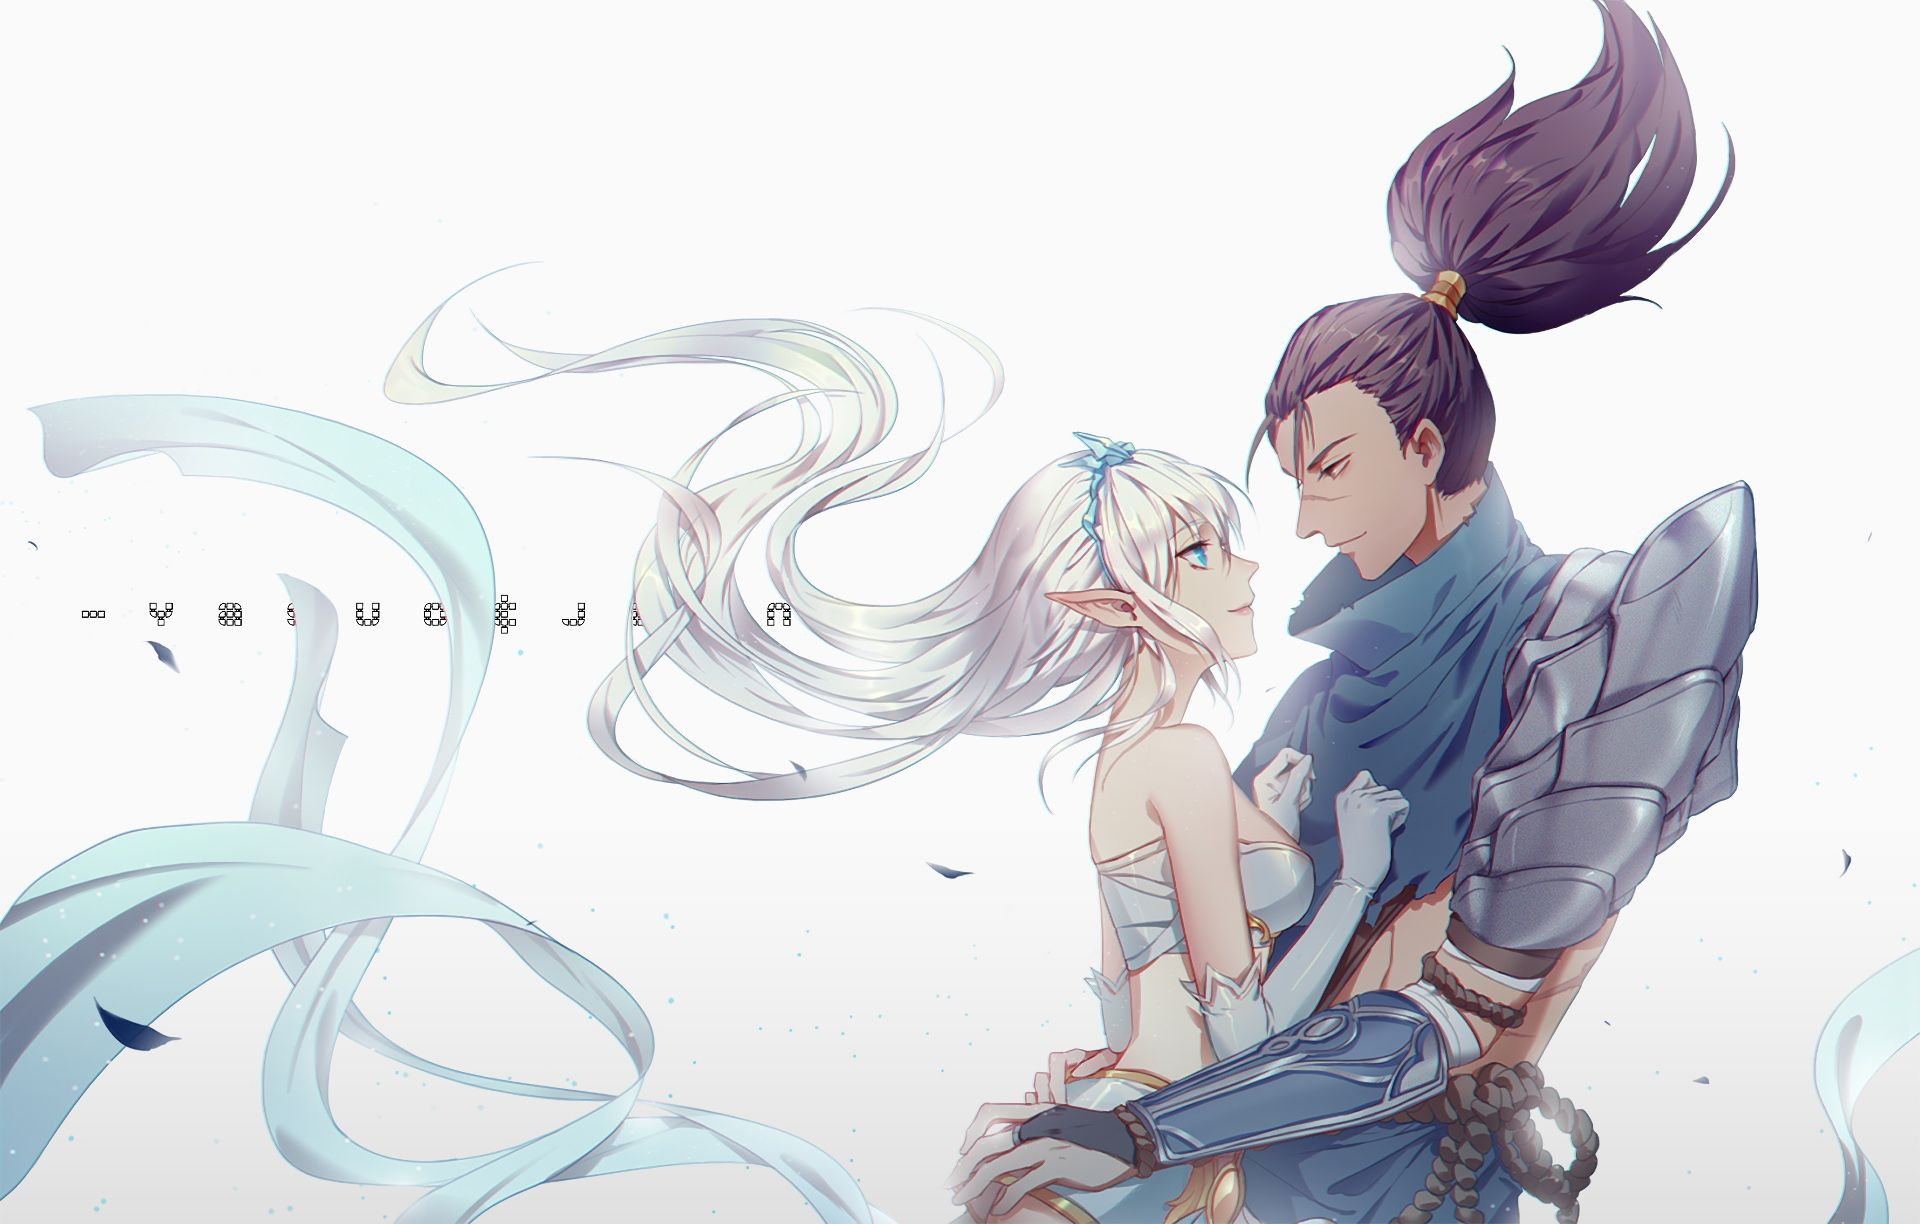 Janna and Yasuo 7u7